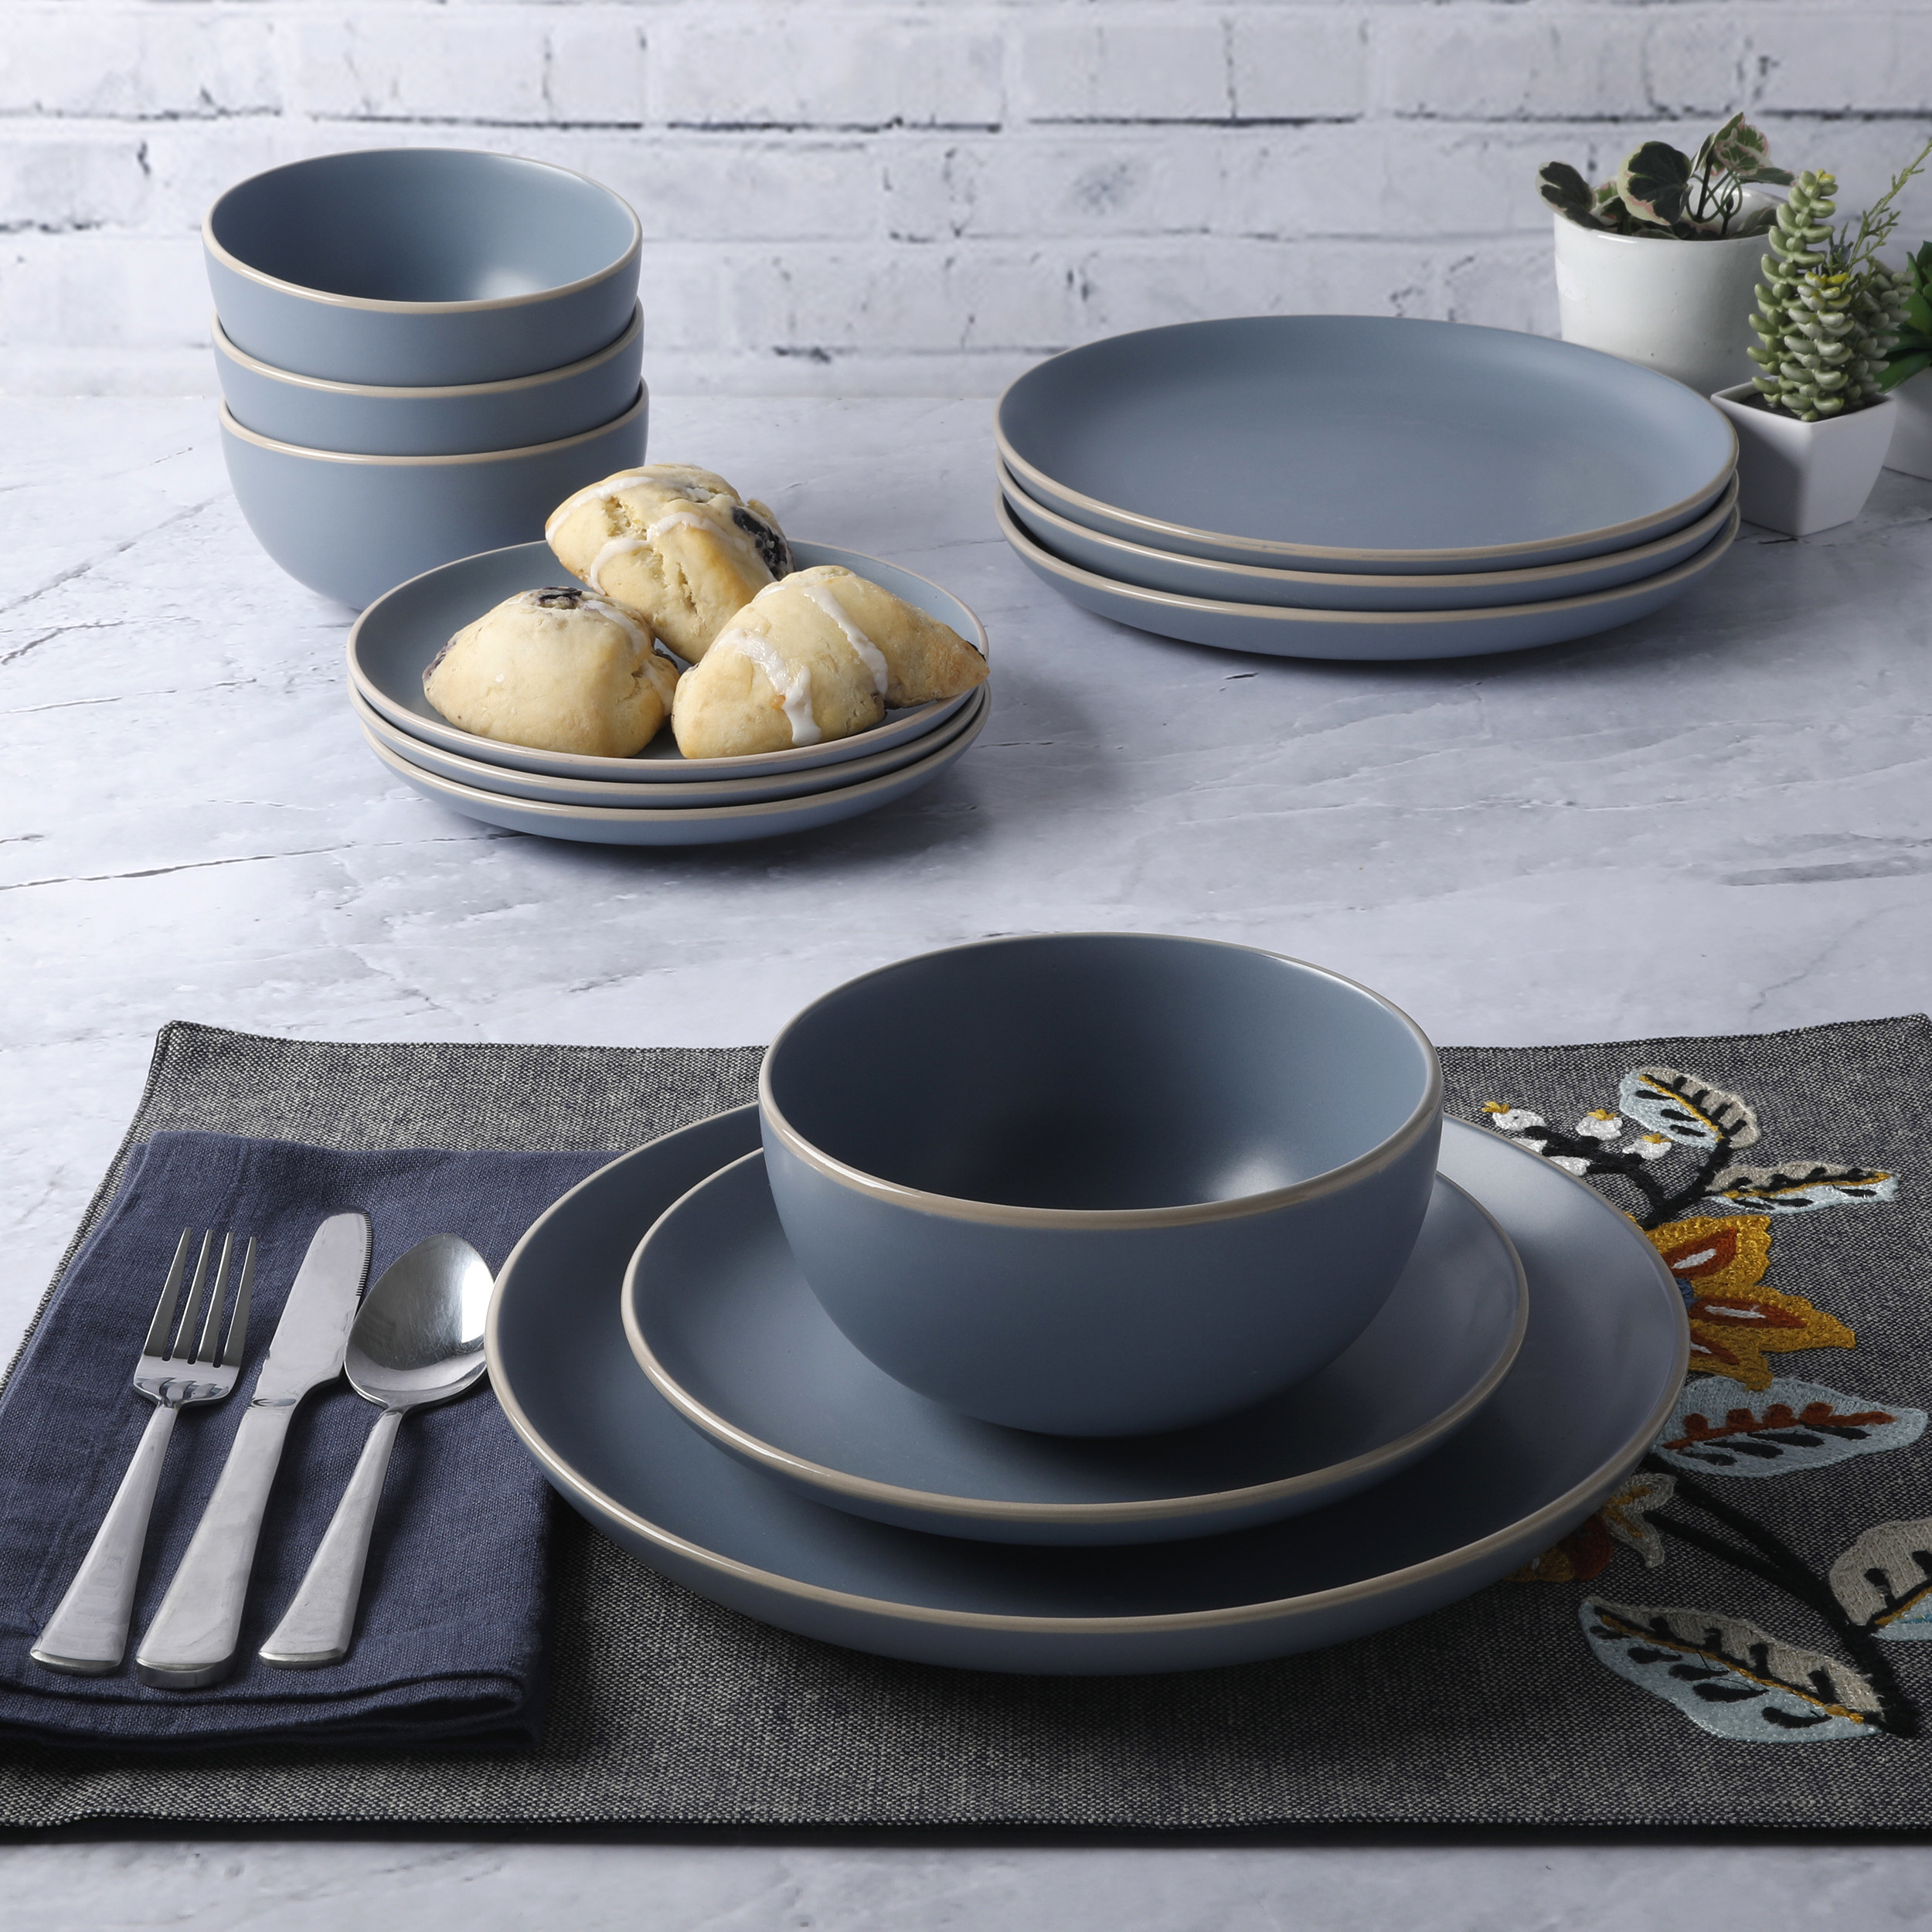 The 12-piece dinnerware set displayed on a place setting to show color and size